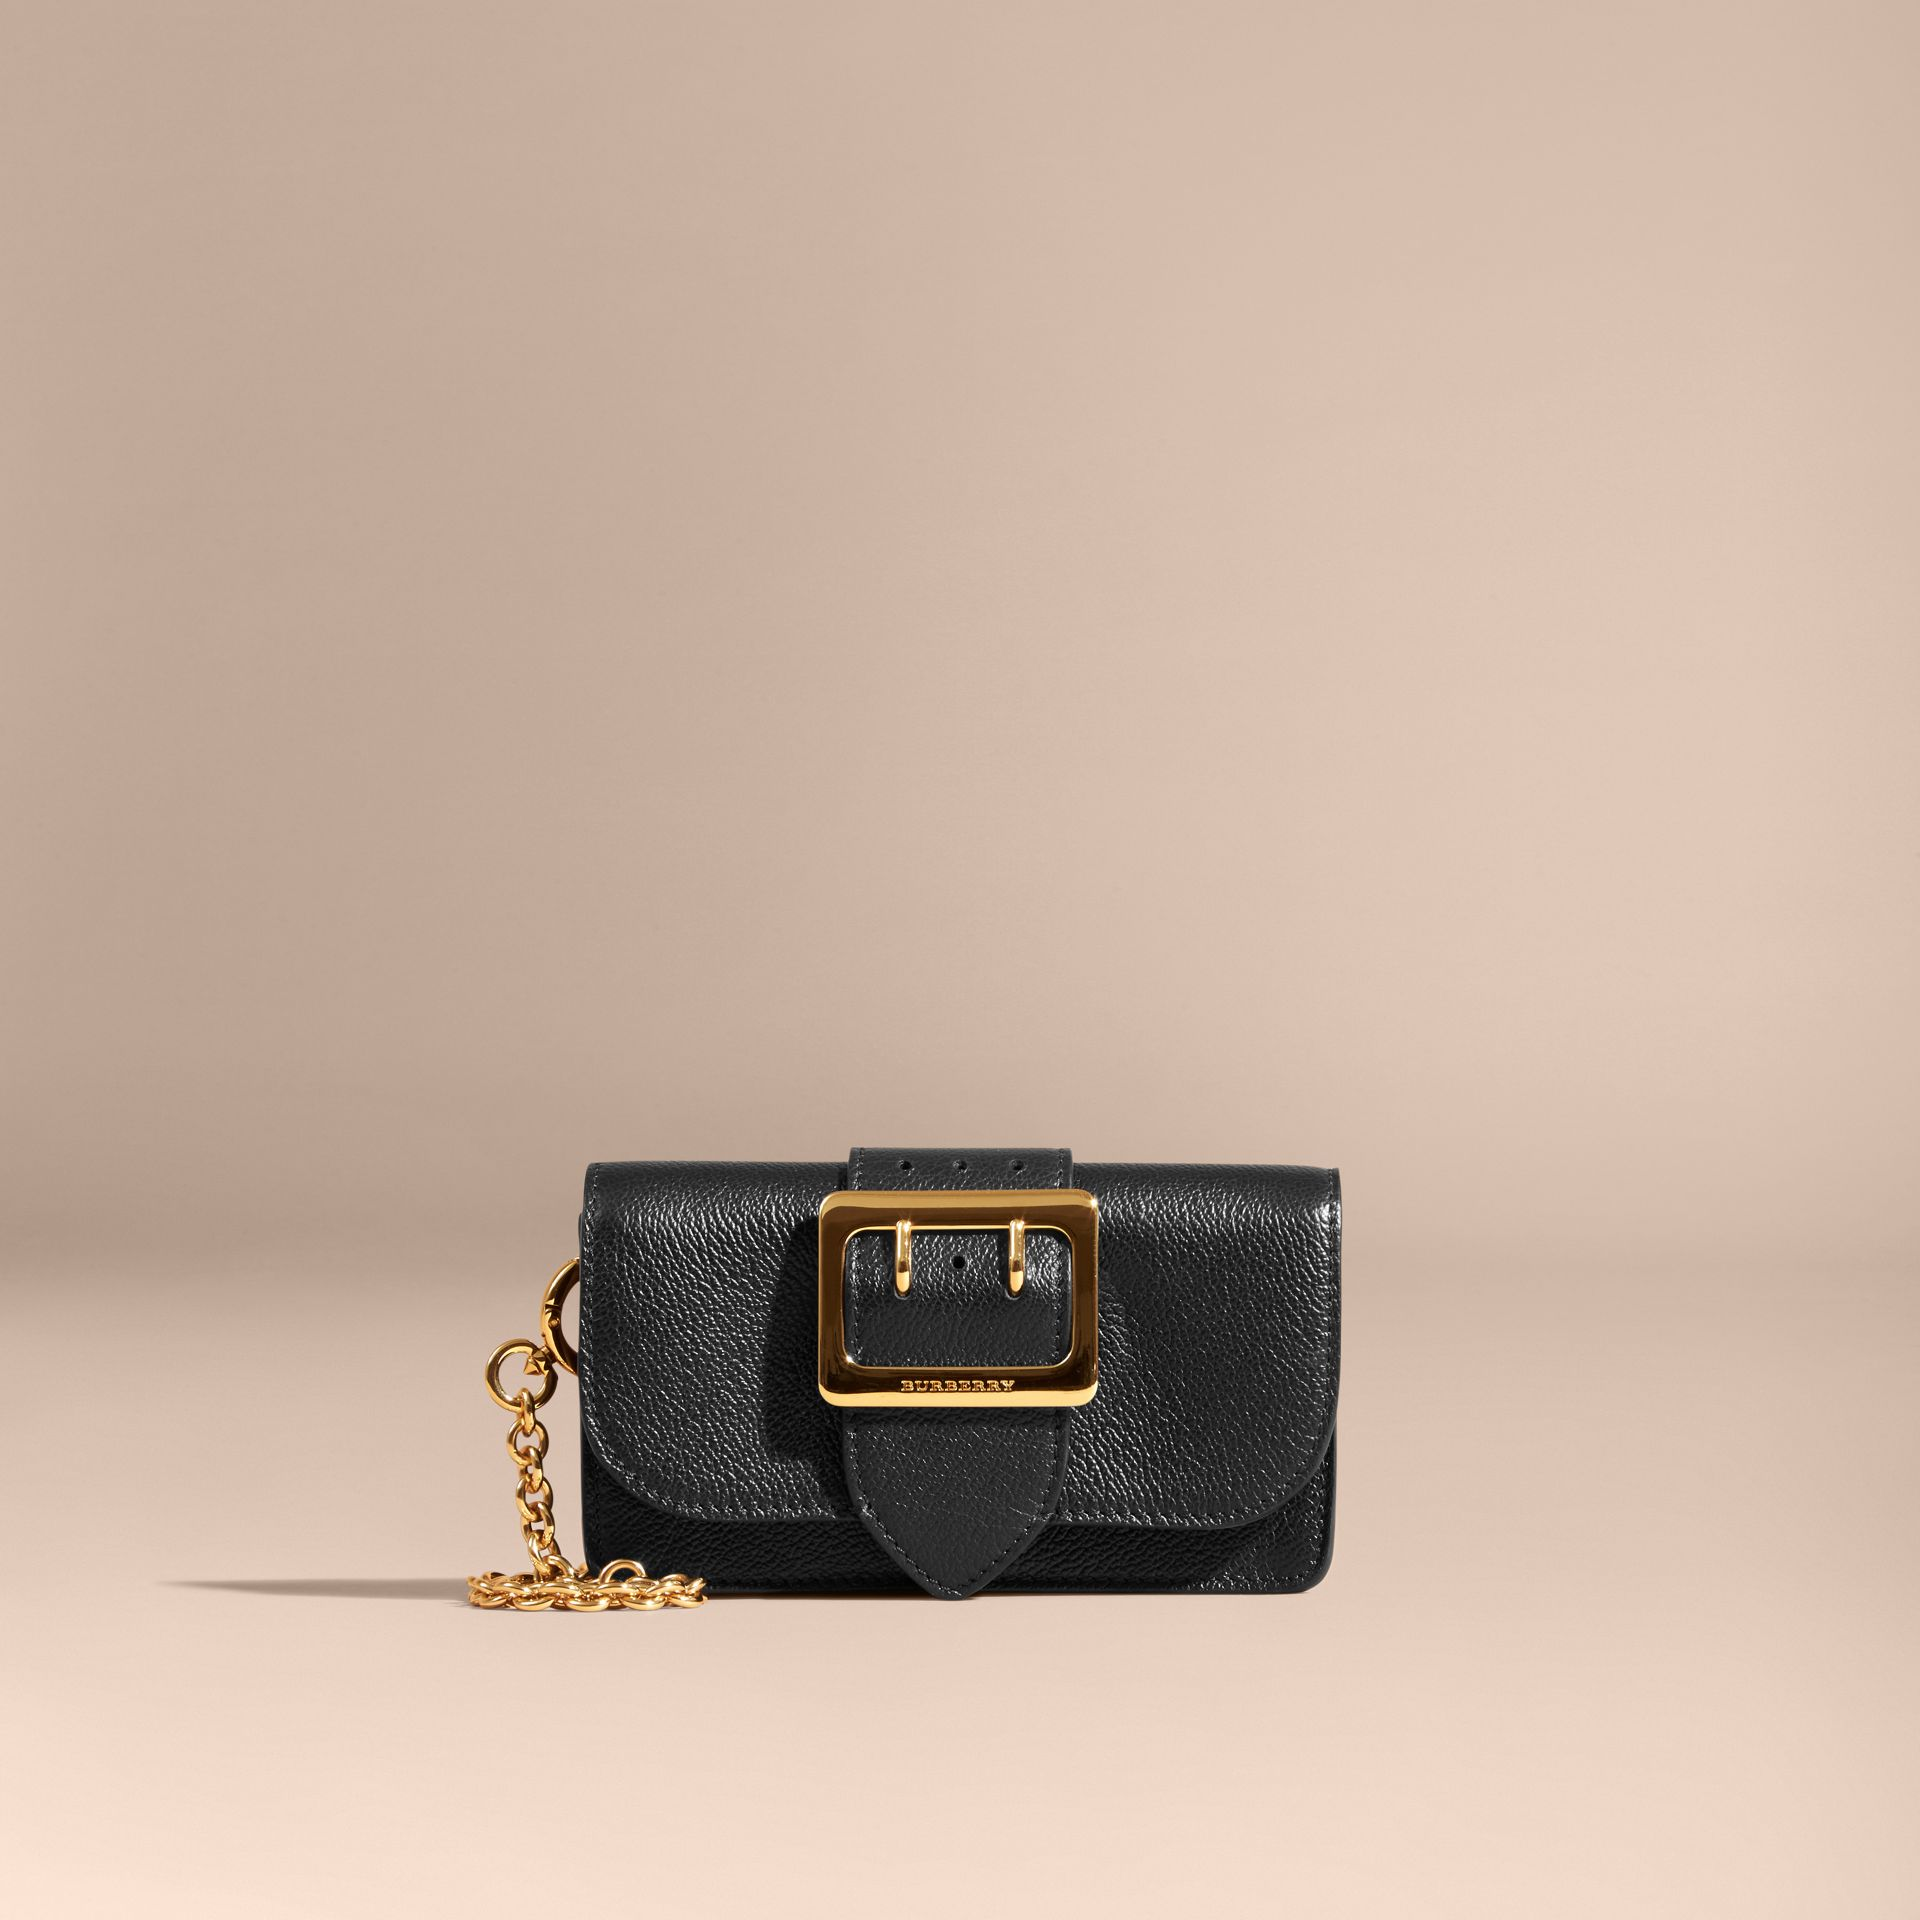 Black The Mini Buckle Bag in Grainy Leather Black - gallery image 7